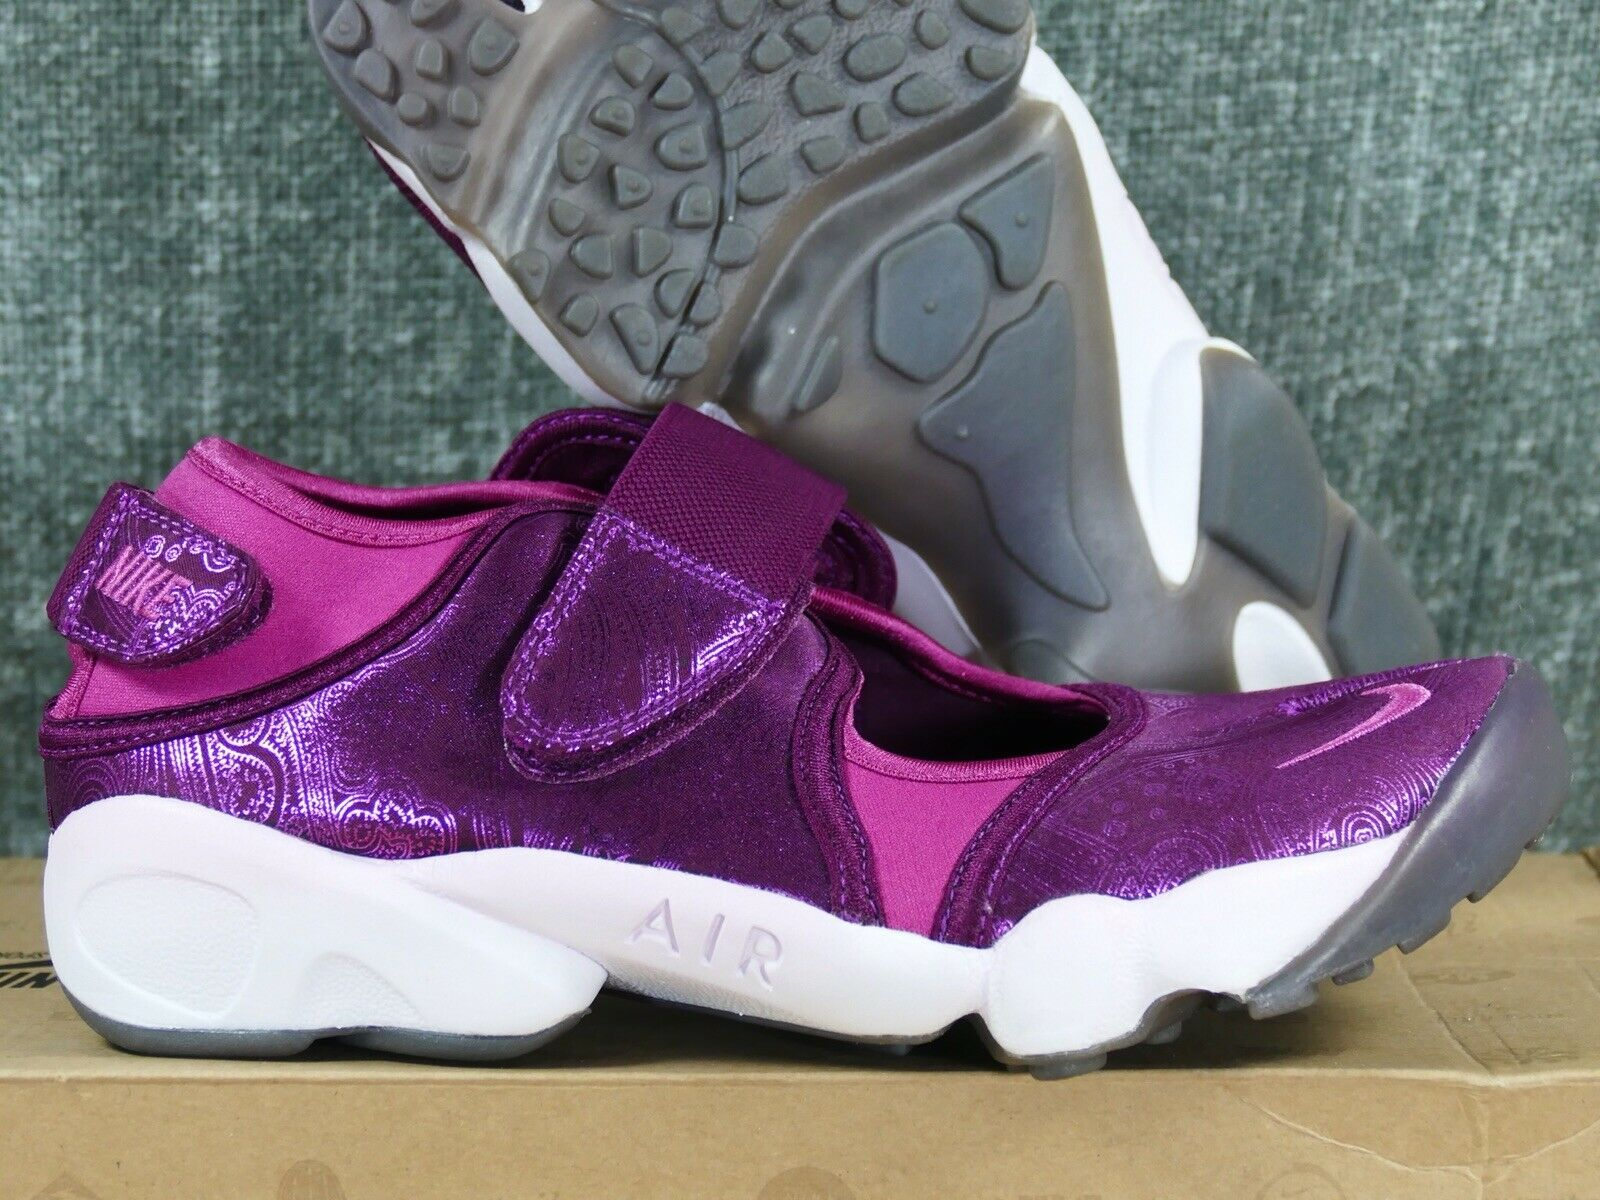 Nike Women's Air Rift sangria wineberry-white - - - retro 2010 6 8 9 running wmns 59d483